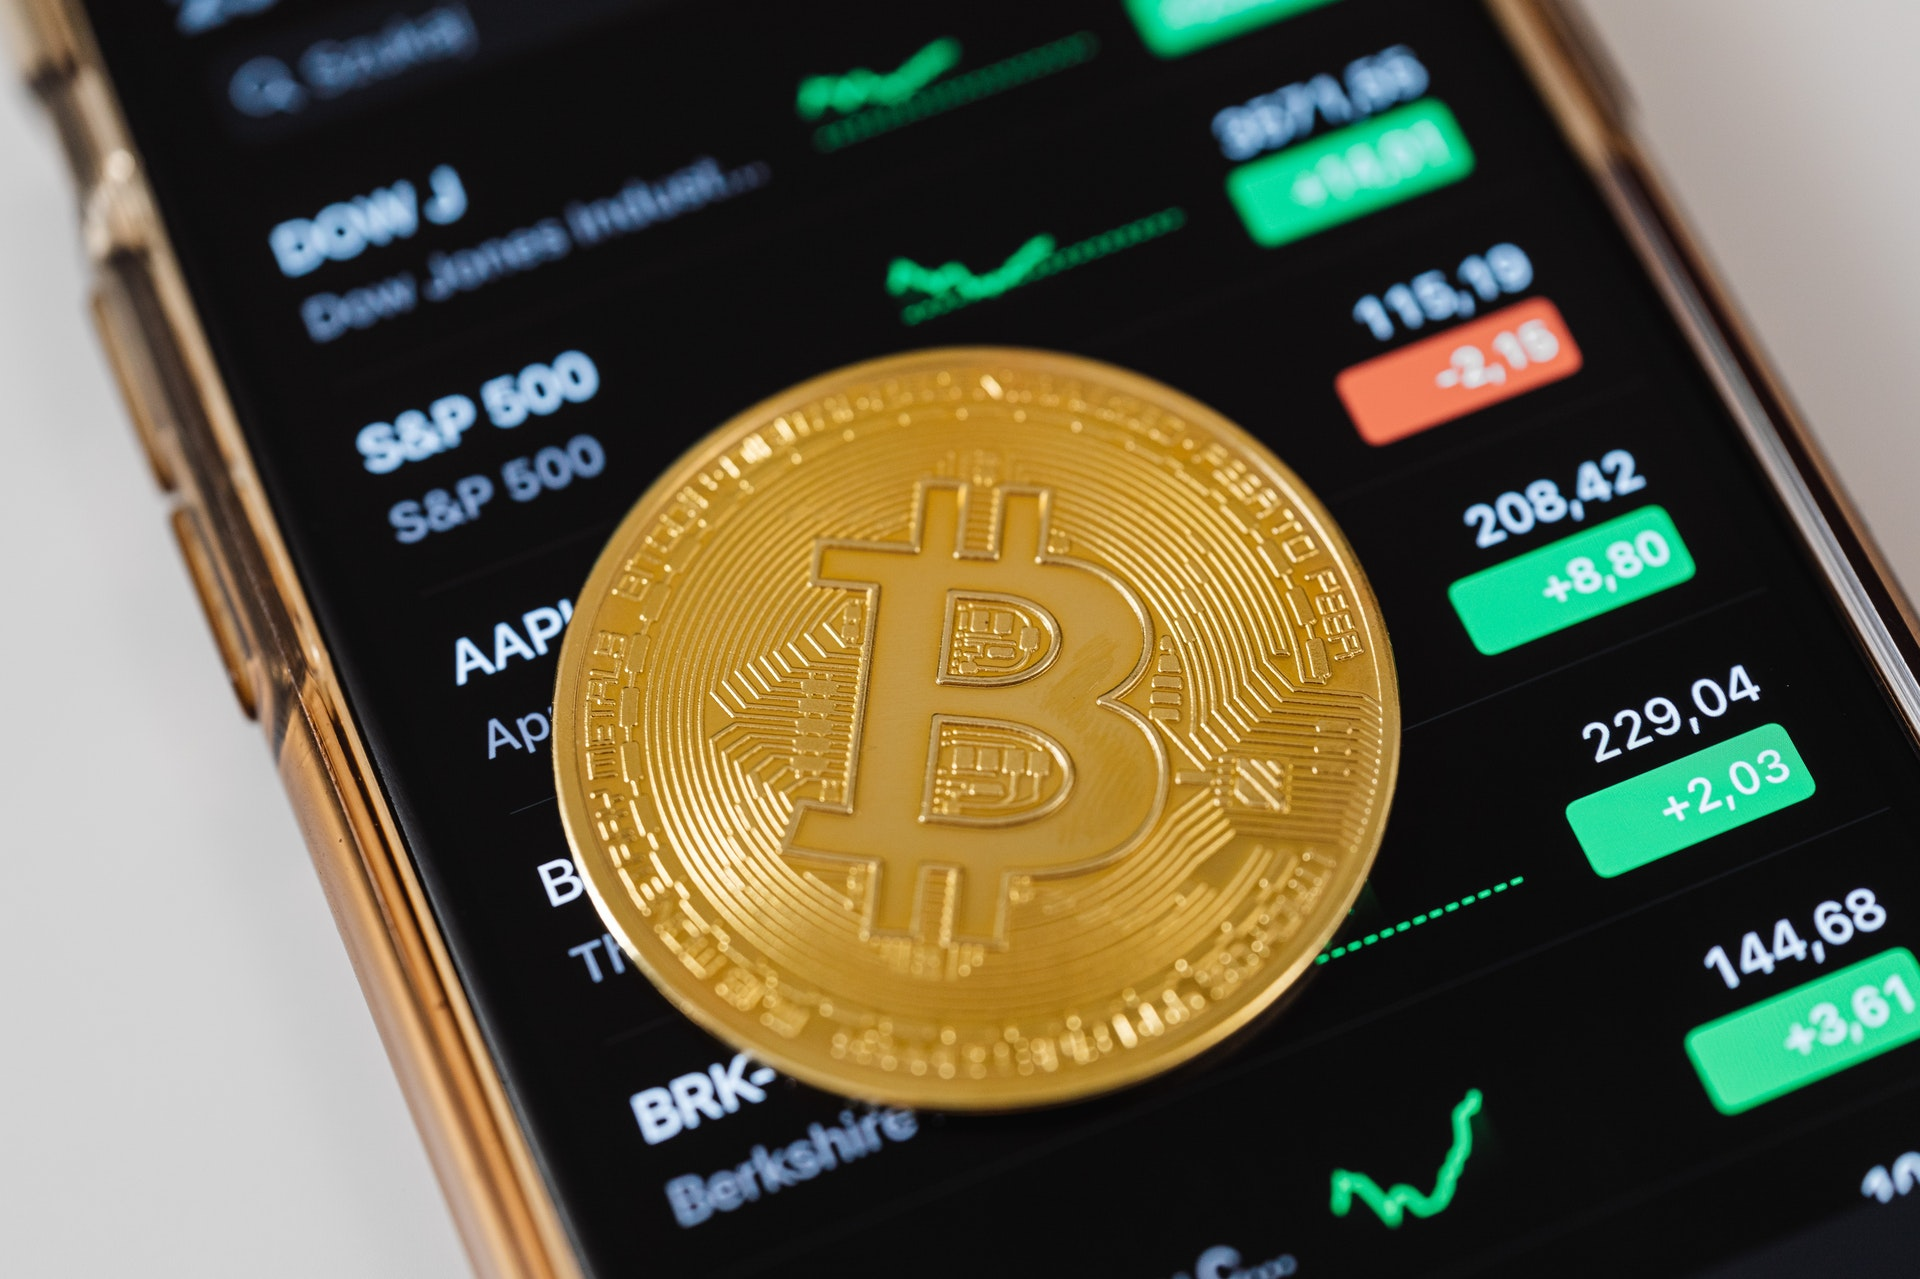 Bitcoin: Asset Manager Makes $1.1B Profit in 6 Months From a $600M Investment